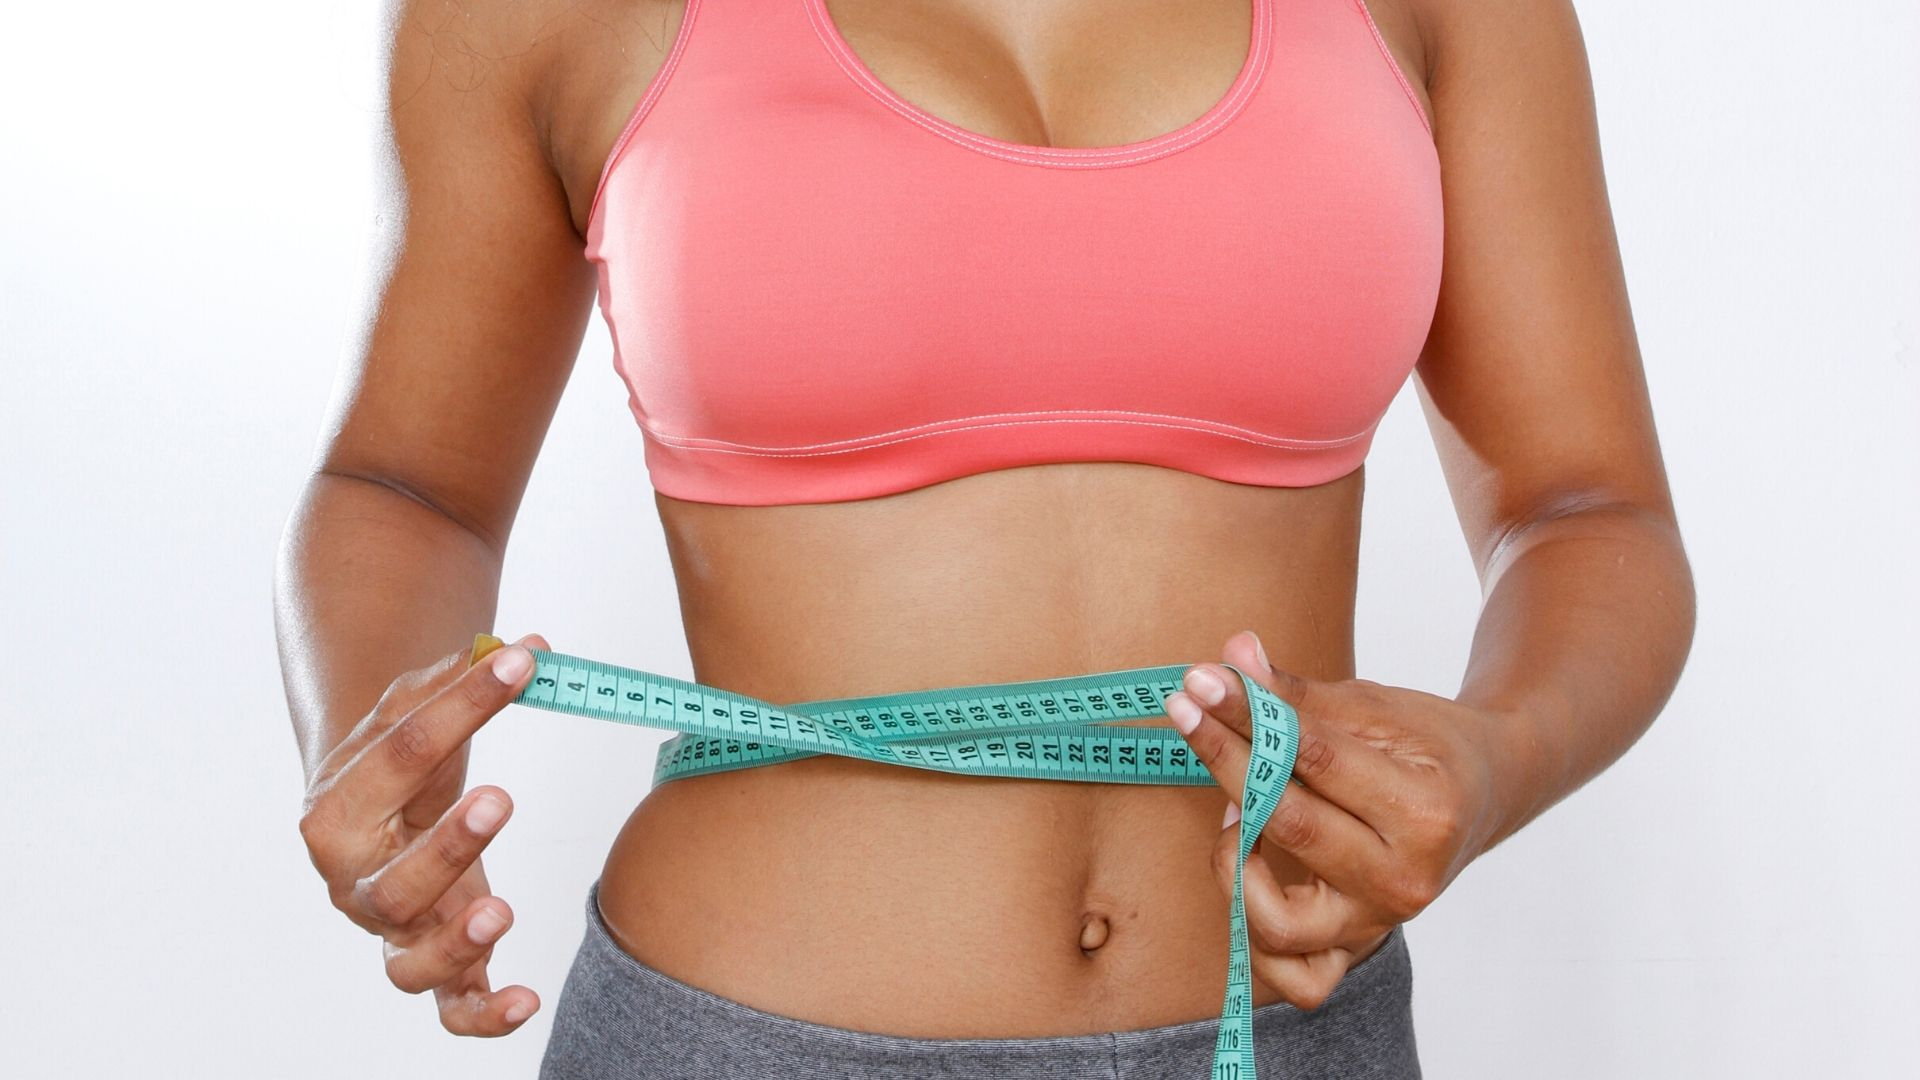 Gain some simple strategies to help you lose belly fat quickly #bellyfat #flatabs #getflat #healthy #abs #core #sixpackabs #healthy #womenshealth